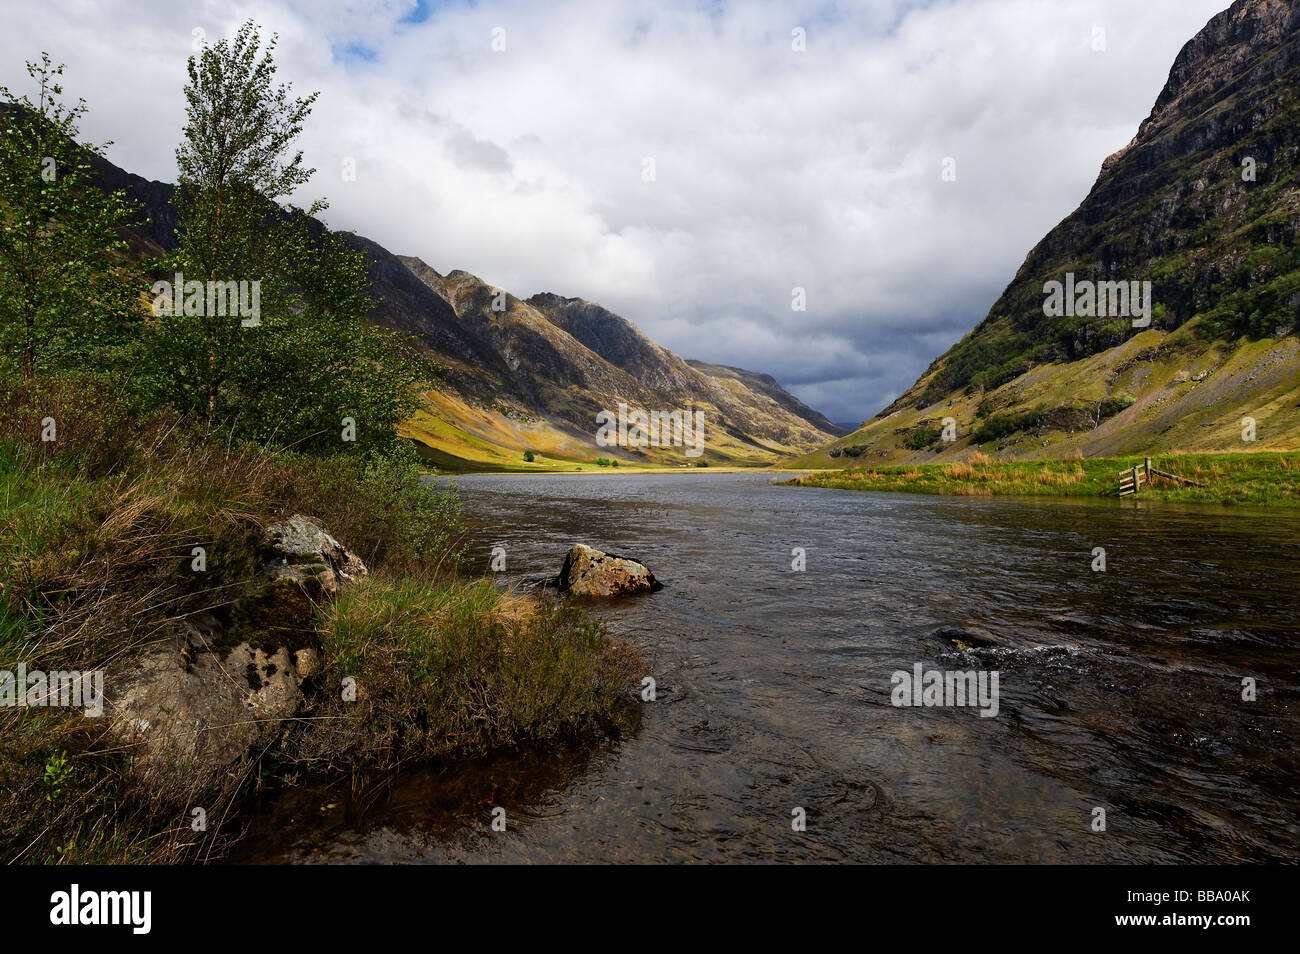 Loch Achtriochtan at the foot of Aonach Dubh in Glen Coe in the Scottish Highlands - Stock Image